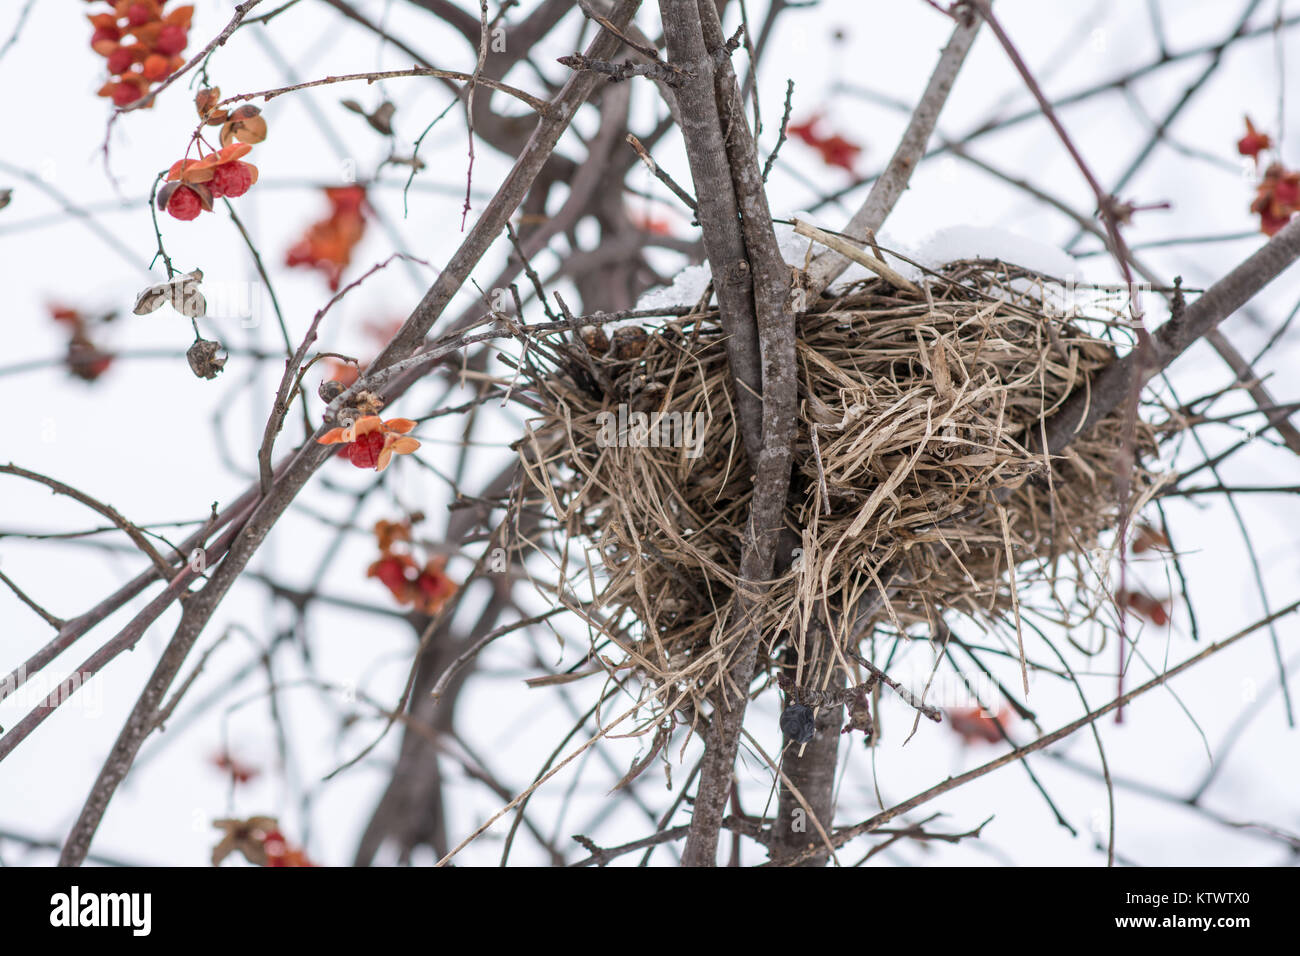 birds nest covered in snow in the winter with red berries surounding it in a bush. - Stock Image